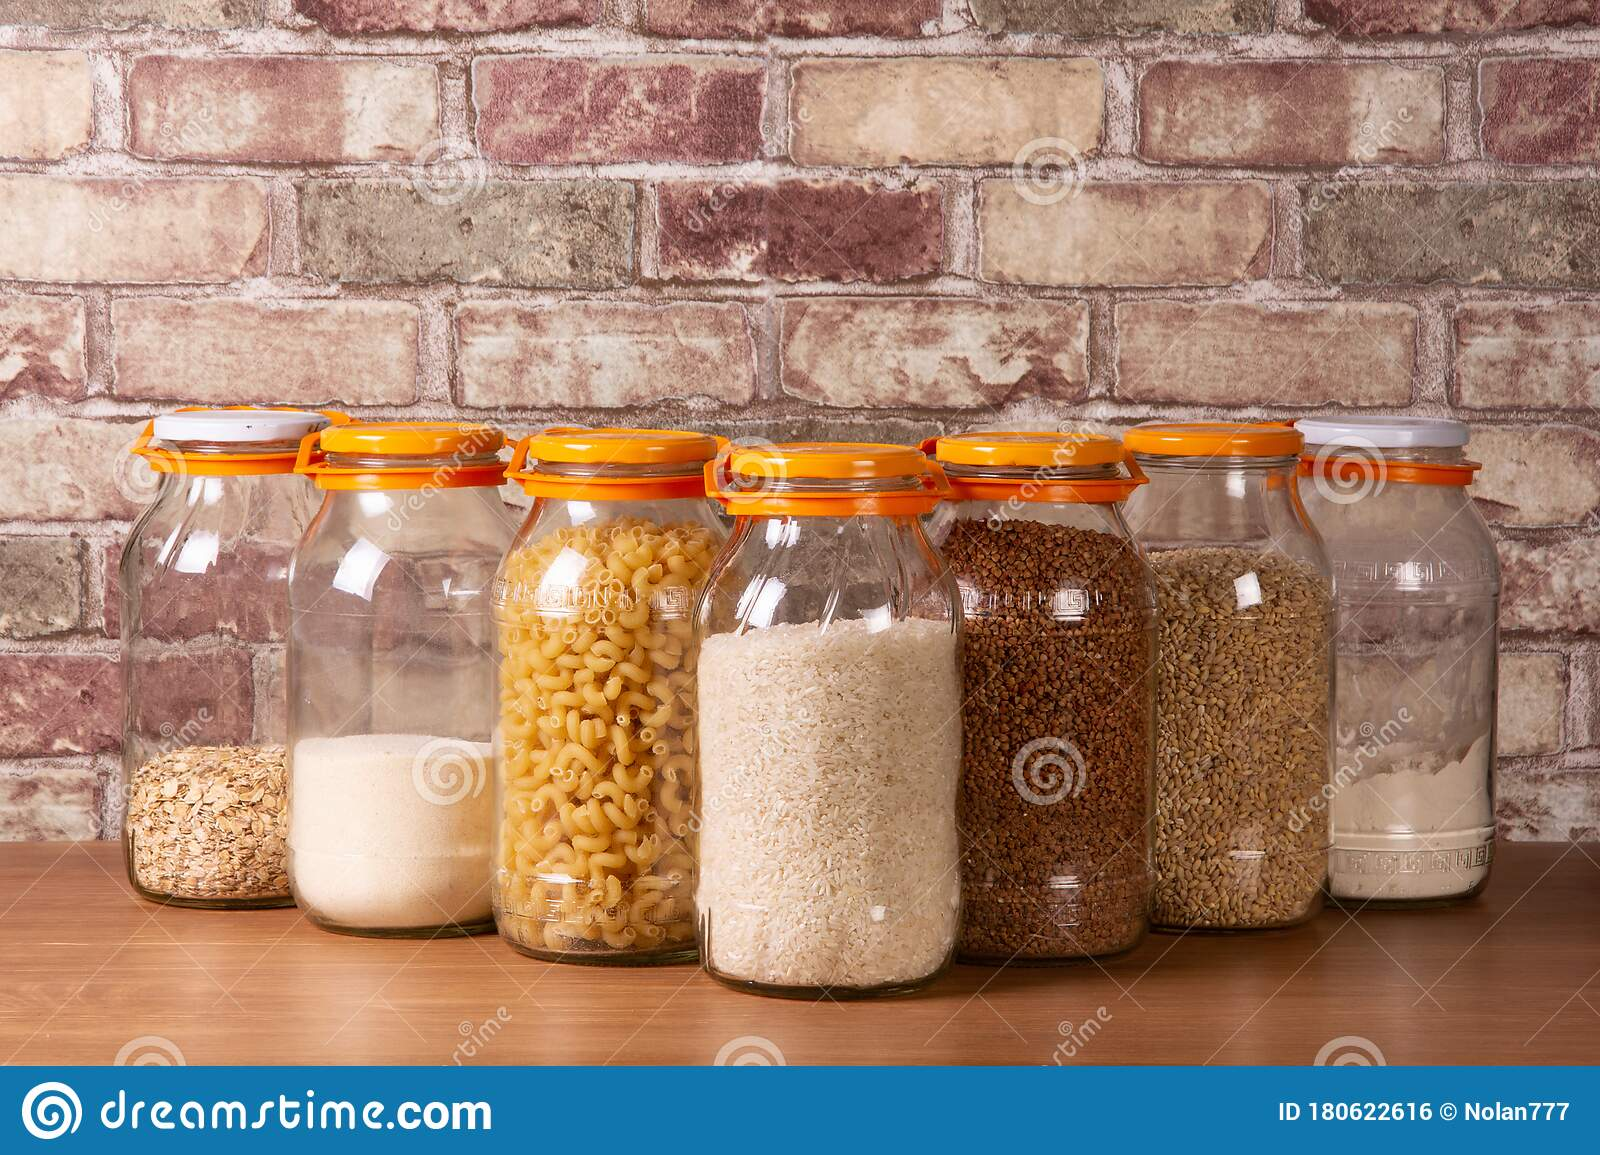 Various Food Storage Shelves In Glass Jars Stock Photo Image Of Store Tasty 180622616